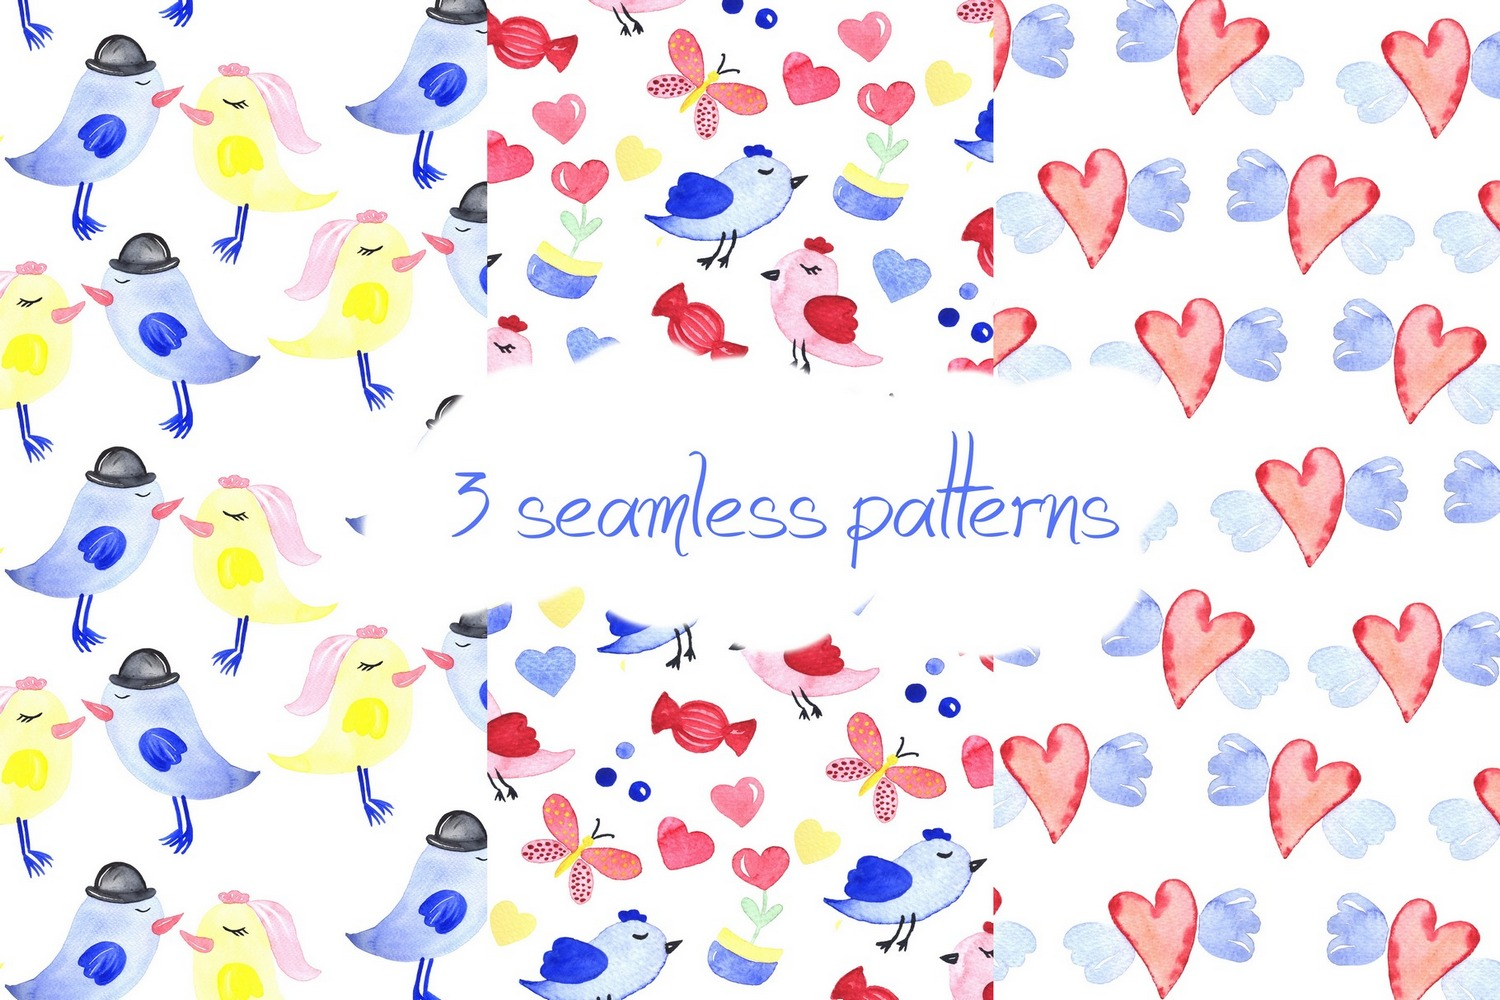 Love collection. Elements patterns example image 3